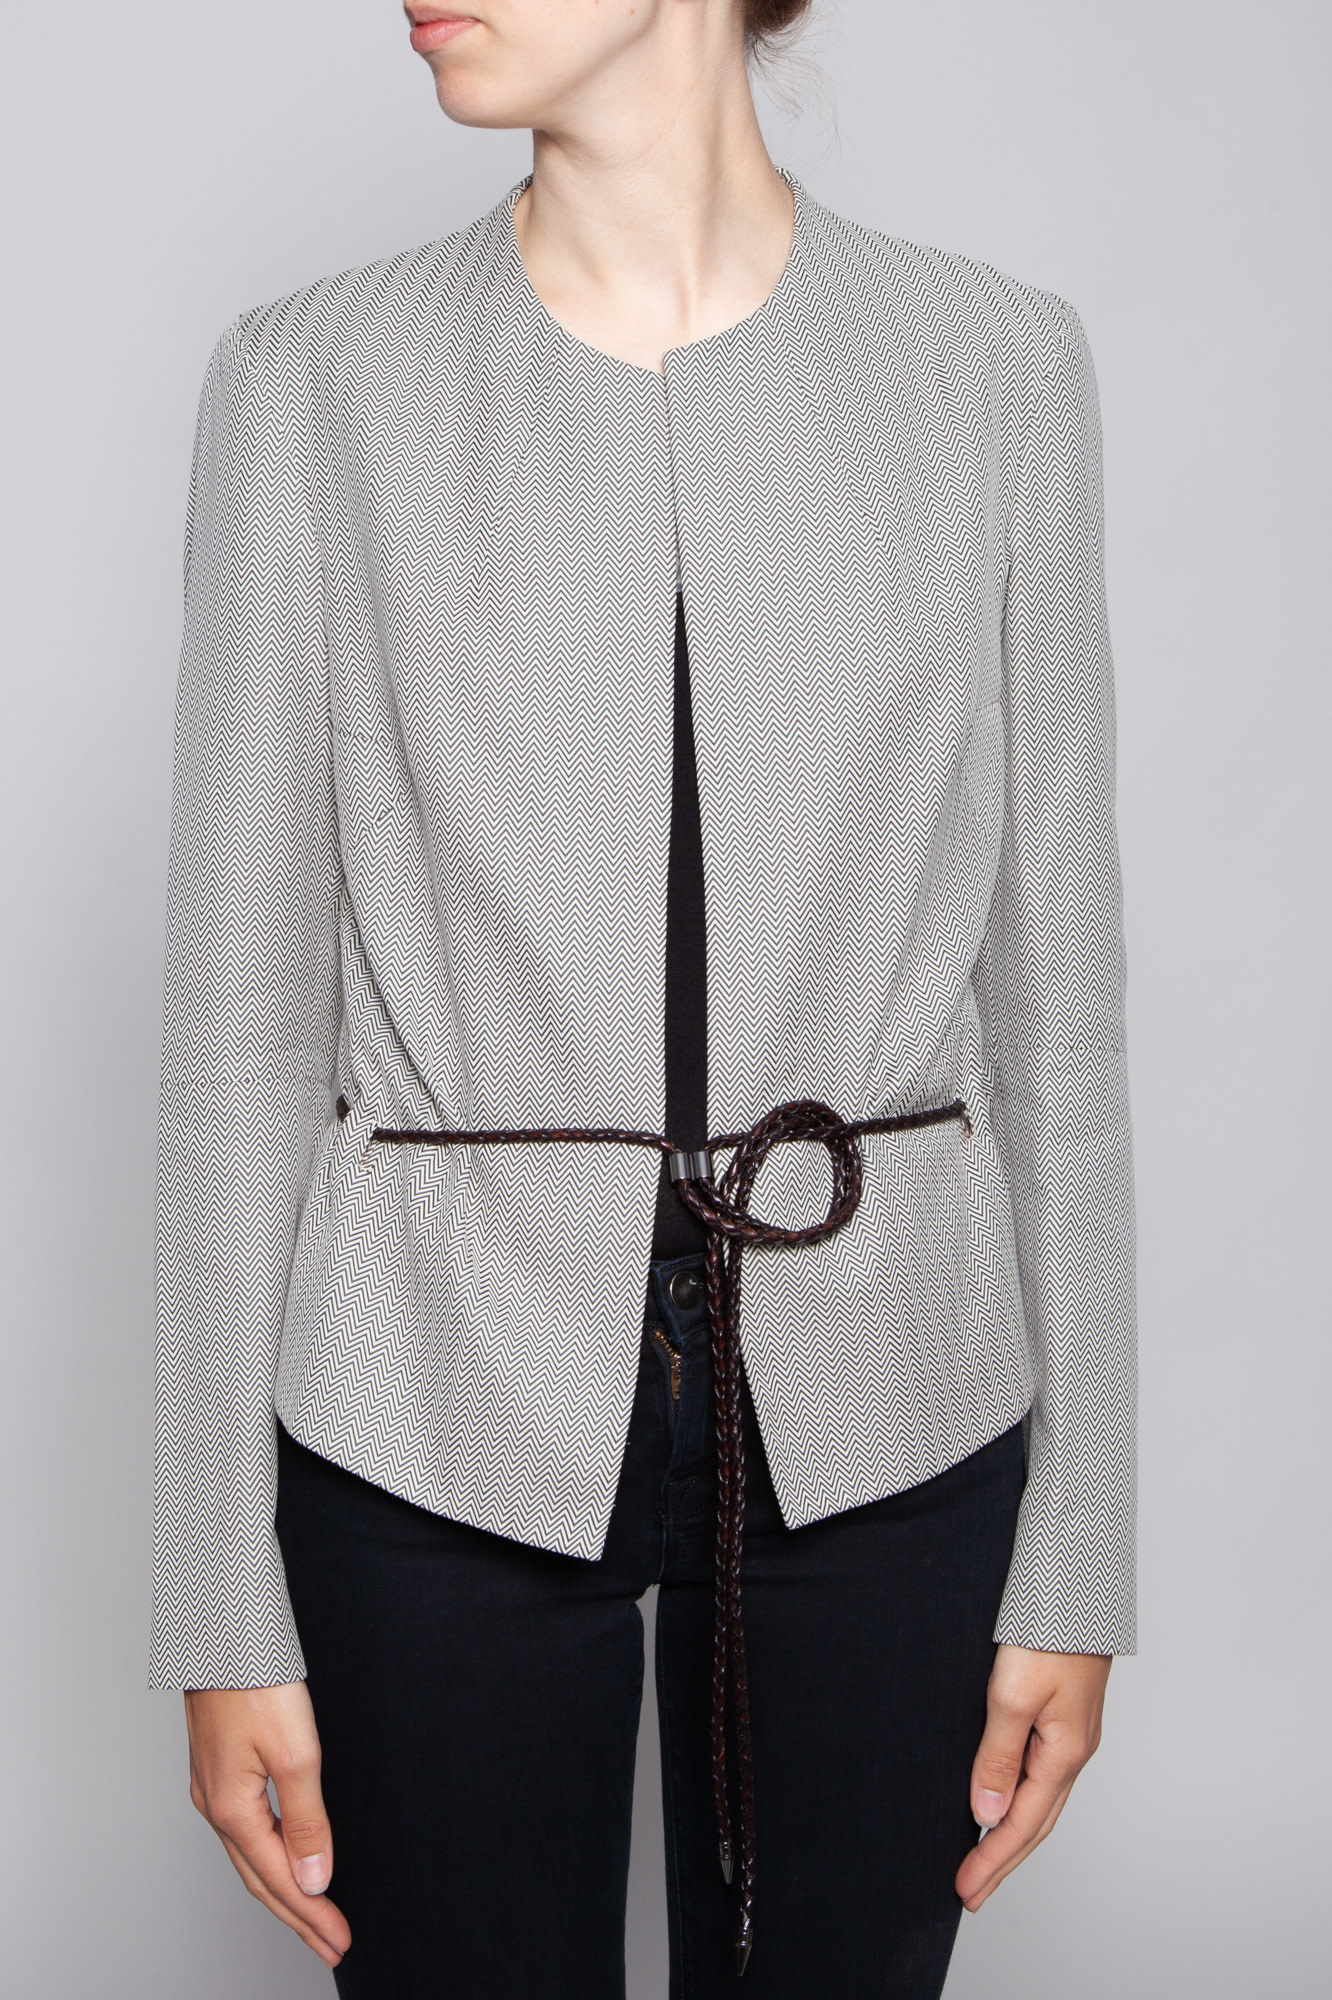 John Bartlett  BLACK AND WHITE PATTERNED JACKET WITH LEATHER BELT